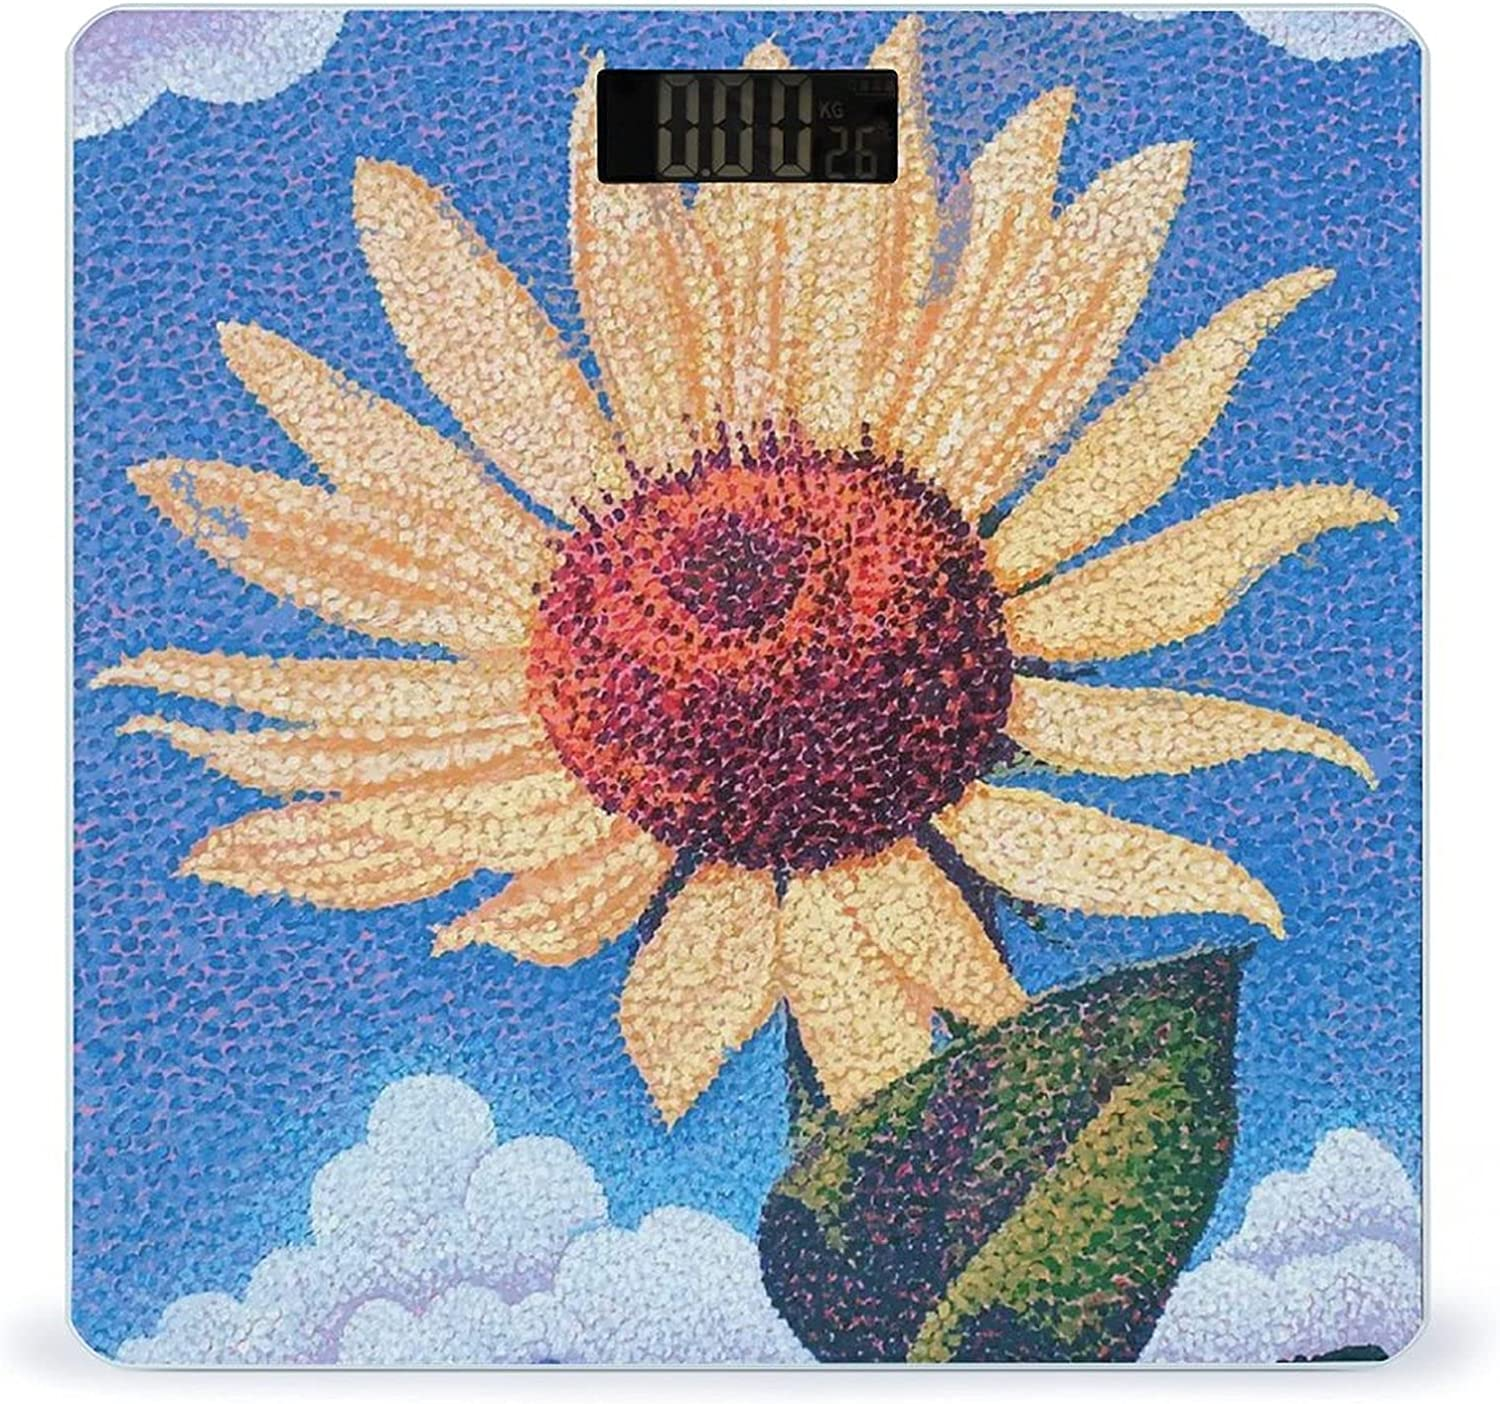 Sunflower Cheap super special price 2 Highly Accurate Smart Weight Scale gift Digital Fitness